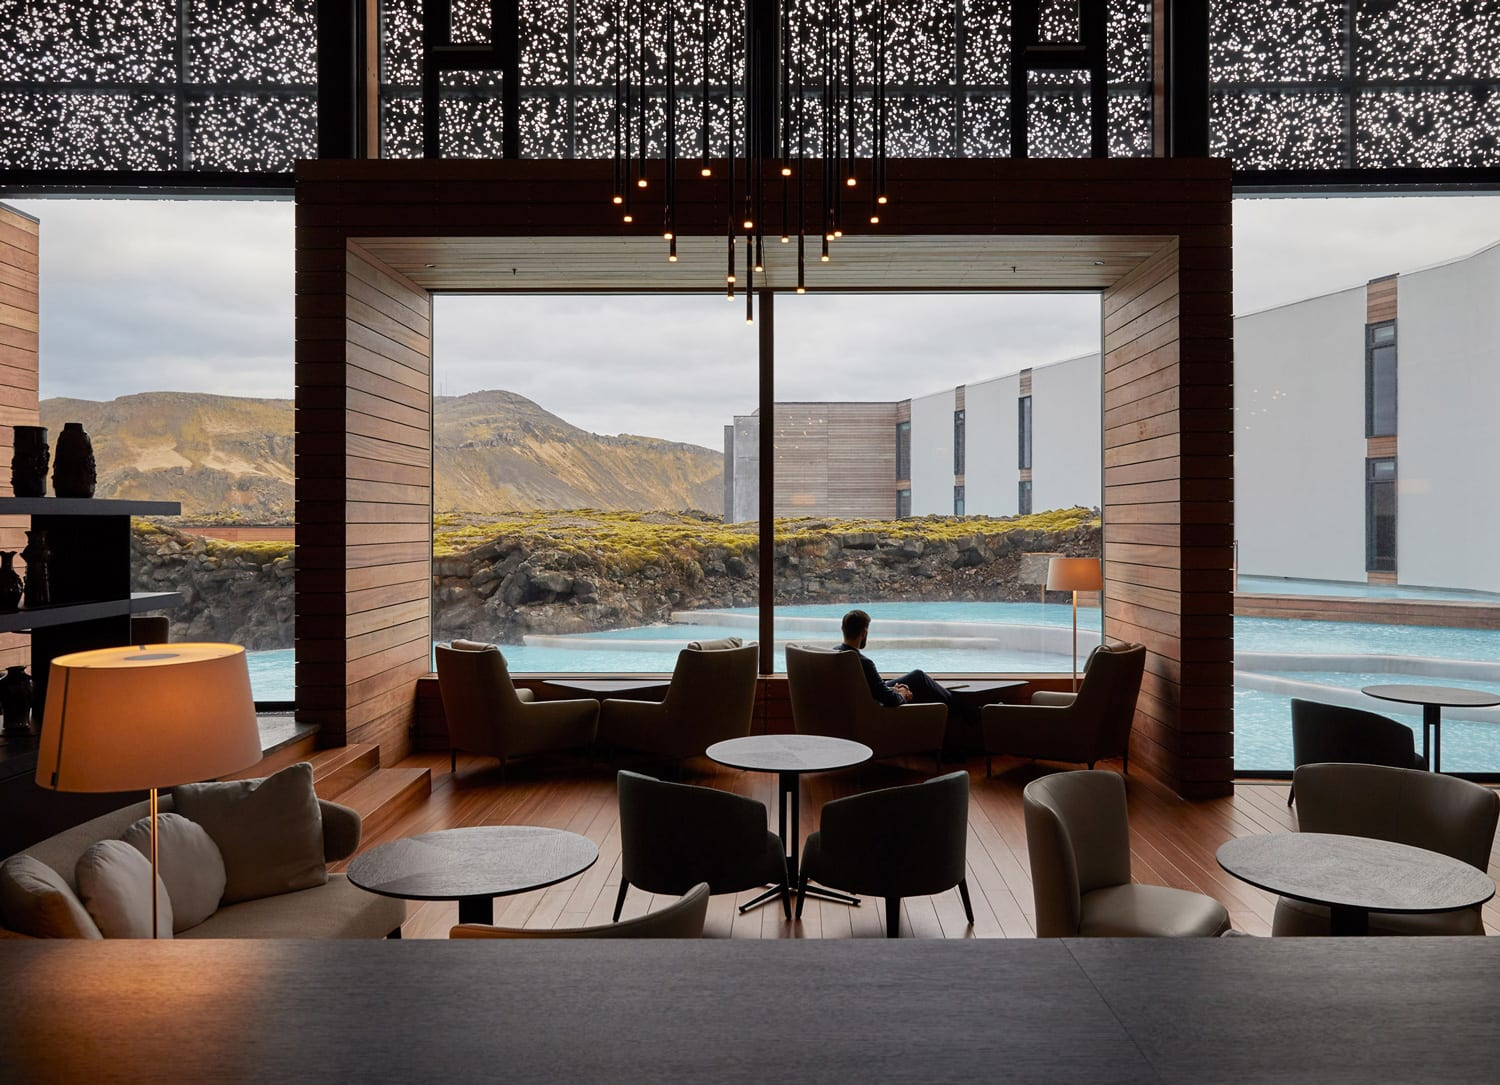 The Retreat Hotel at Blue Lagoon in Grindavík, Iceland by Basalt Architects & Design Group Italia.